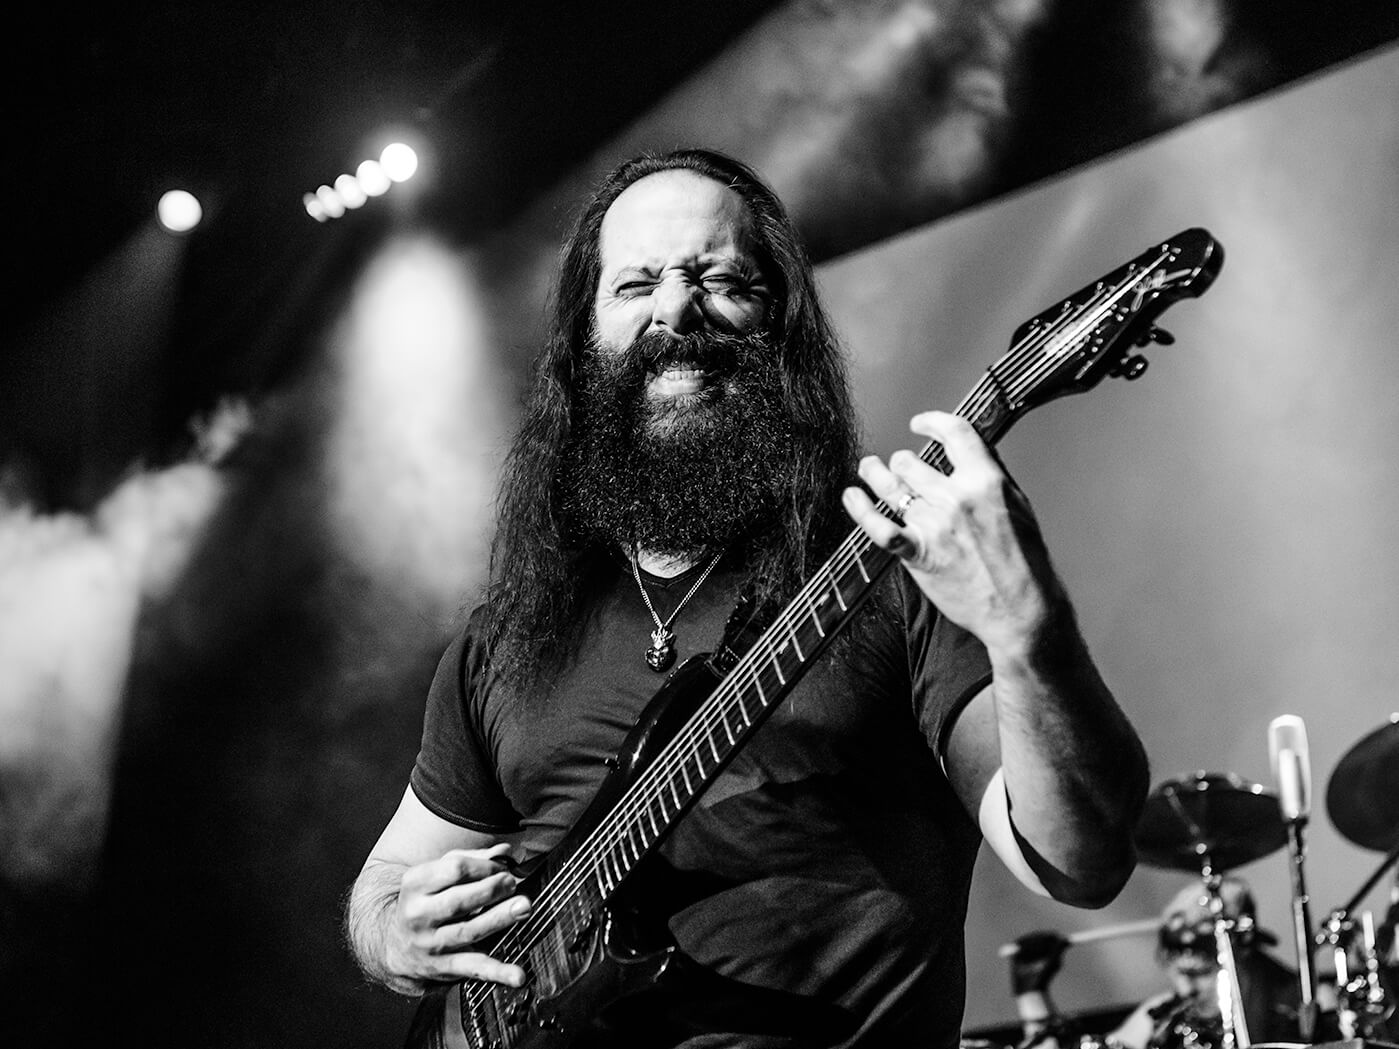 John Petrucci interview live on stage